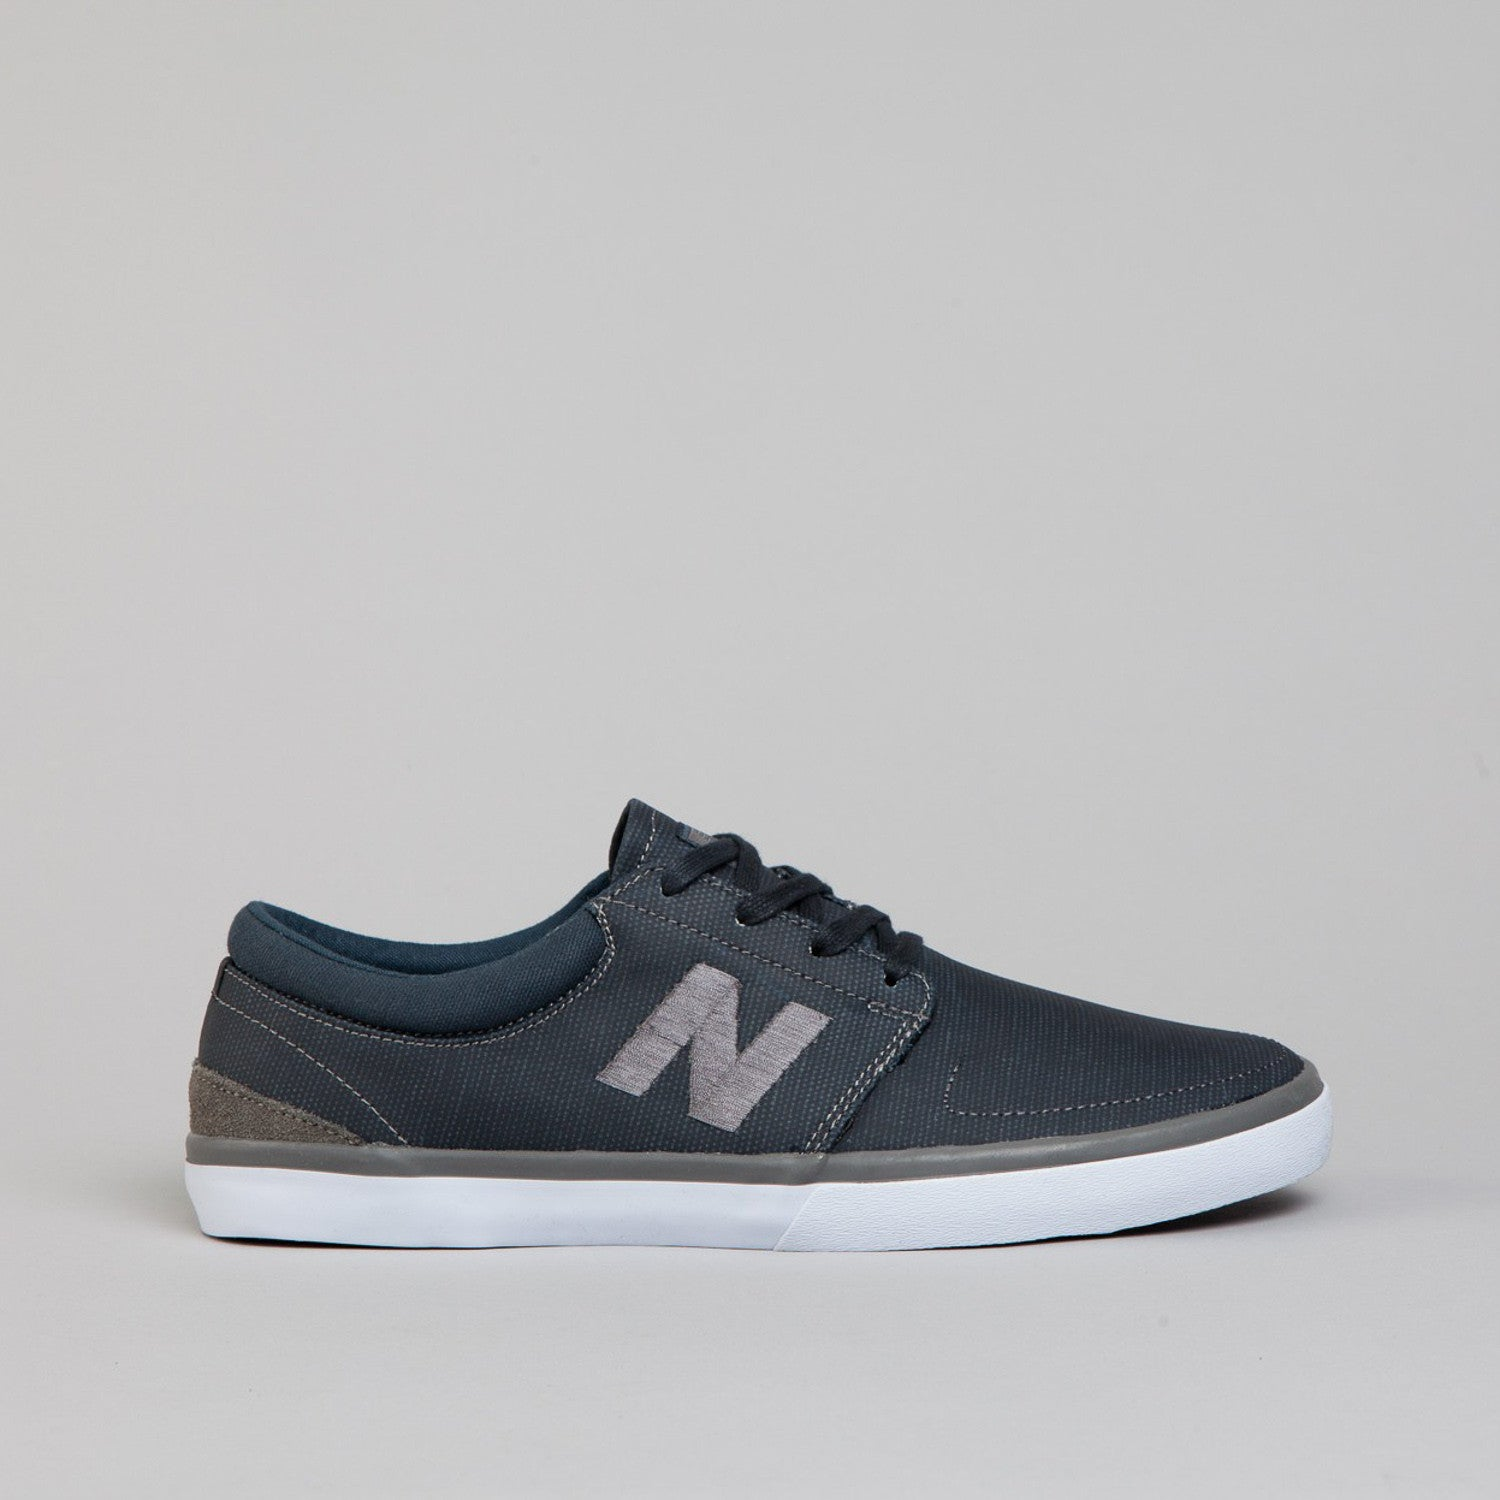 New Balance Numeric Brighton 344 Shoes